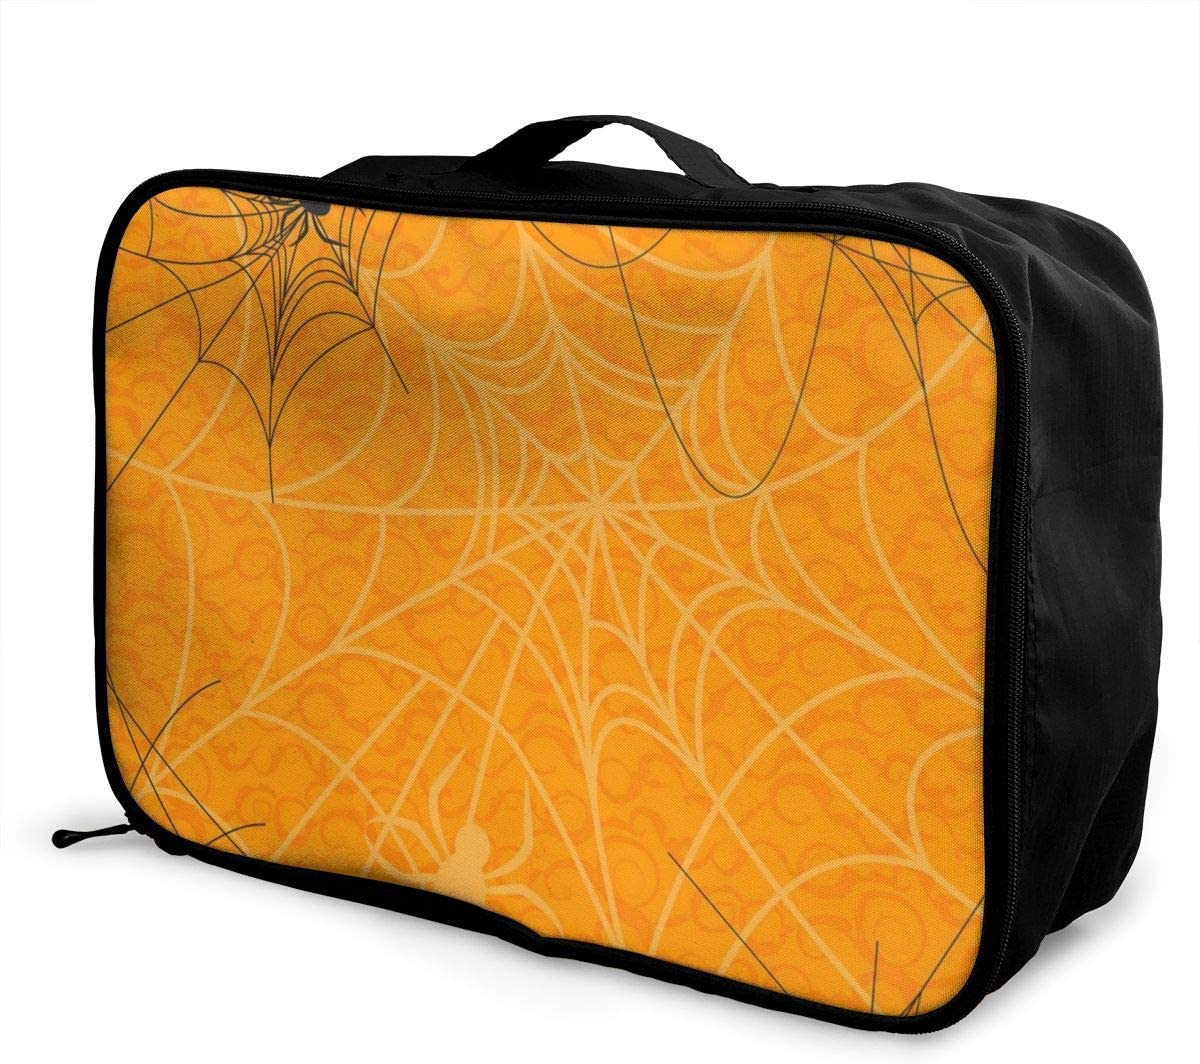 Yunshm Happy Halloween Orange Spider Web Personalized Trolley Handbag Waterproof Unisex Large Capacity For Business Travel Storage